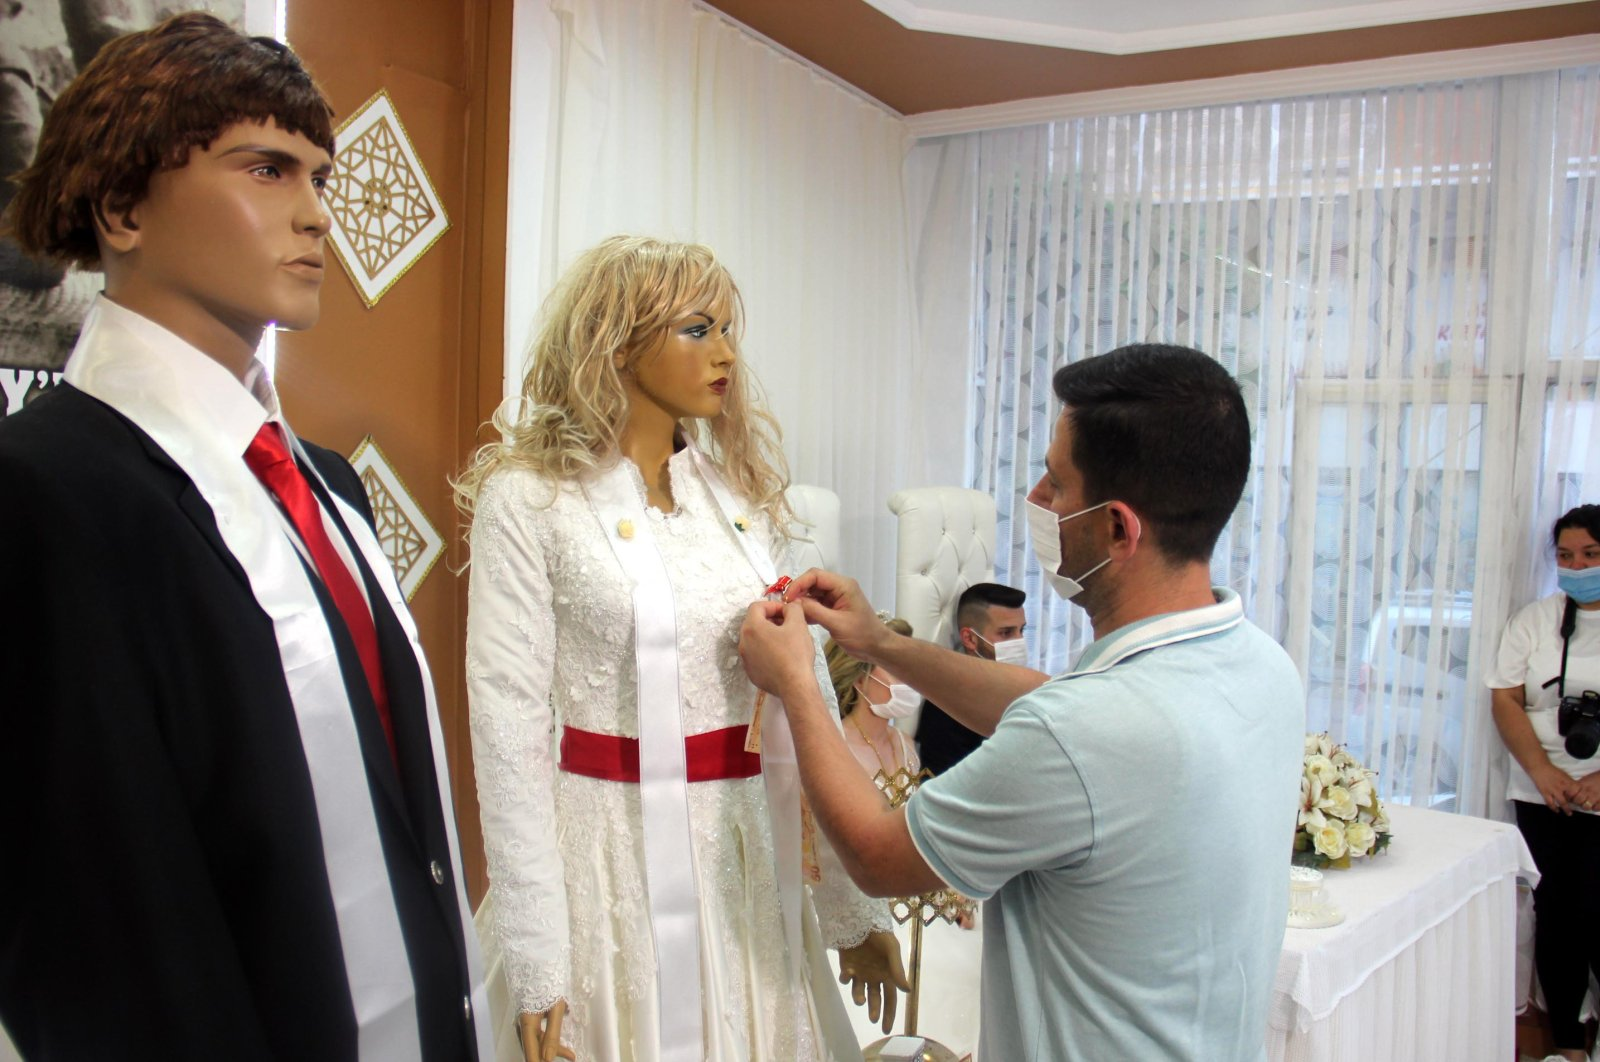 A guest attaches his gift to a dummy bride while the real couple sits at a table, Tekirdağ, Turkey, July 5, 2020. (DHA Photo)